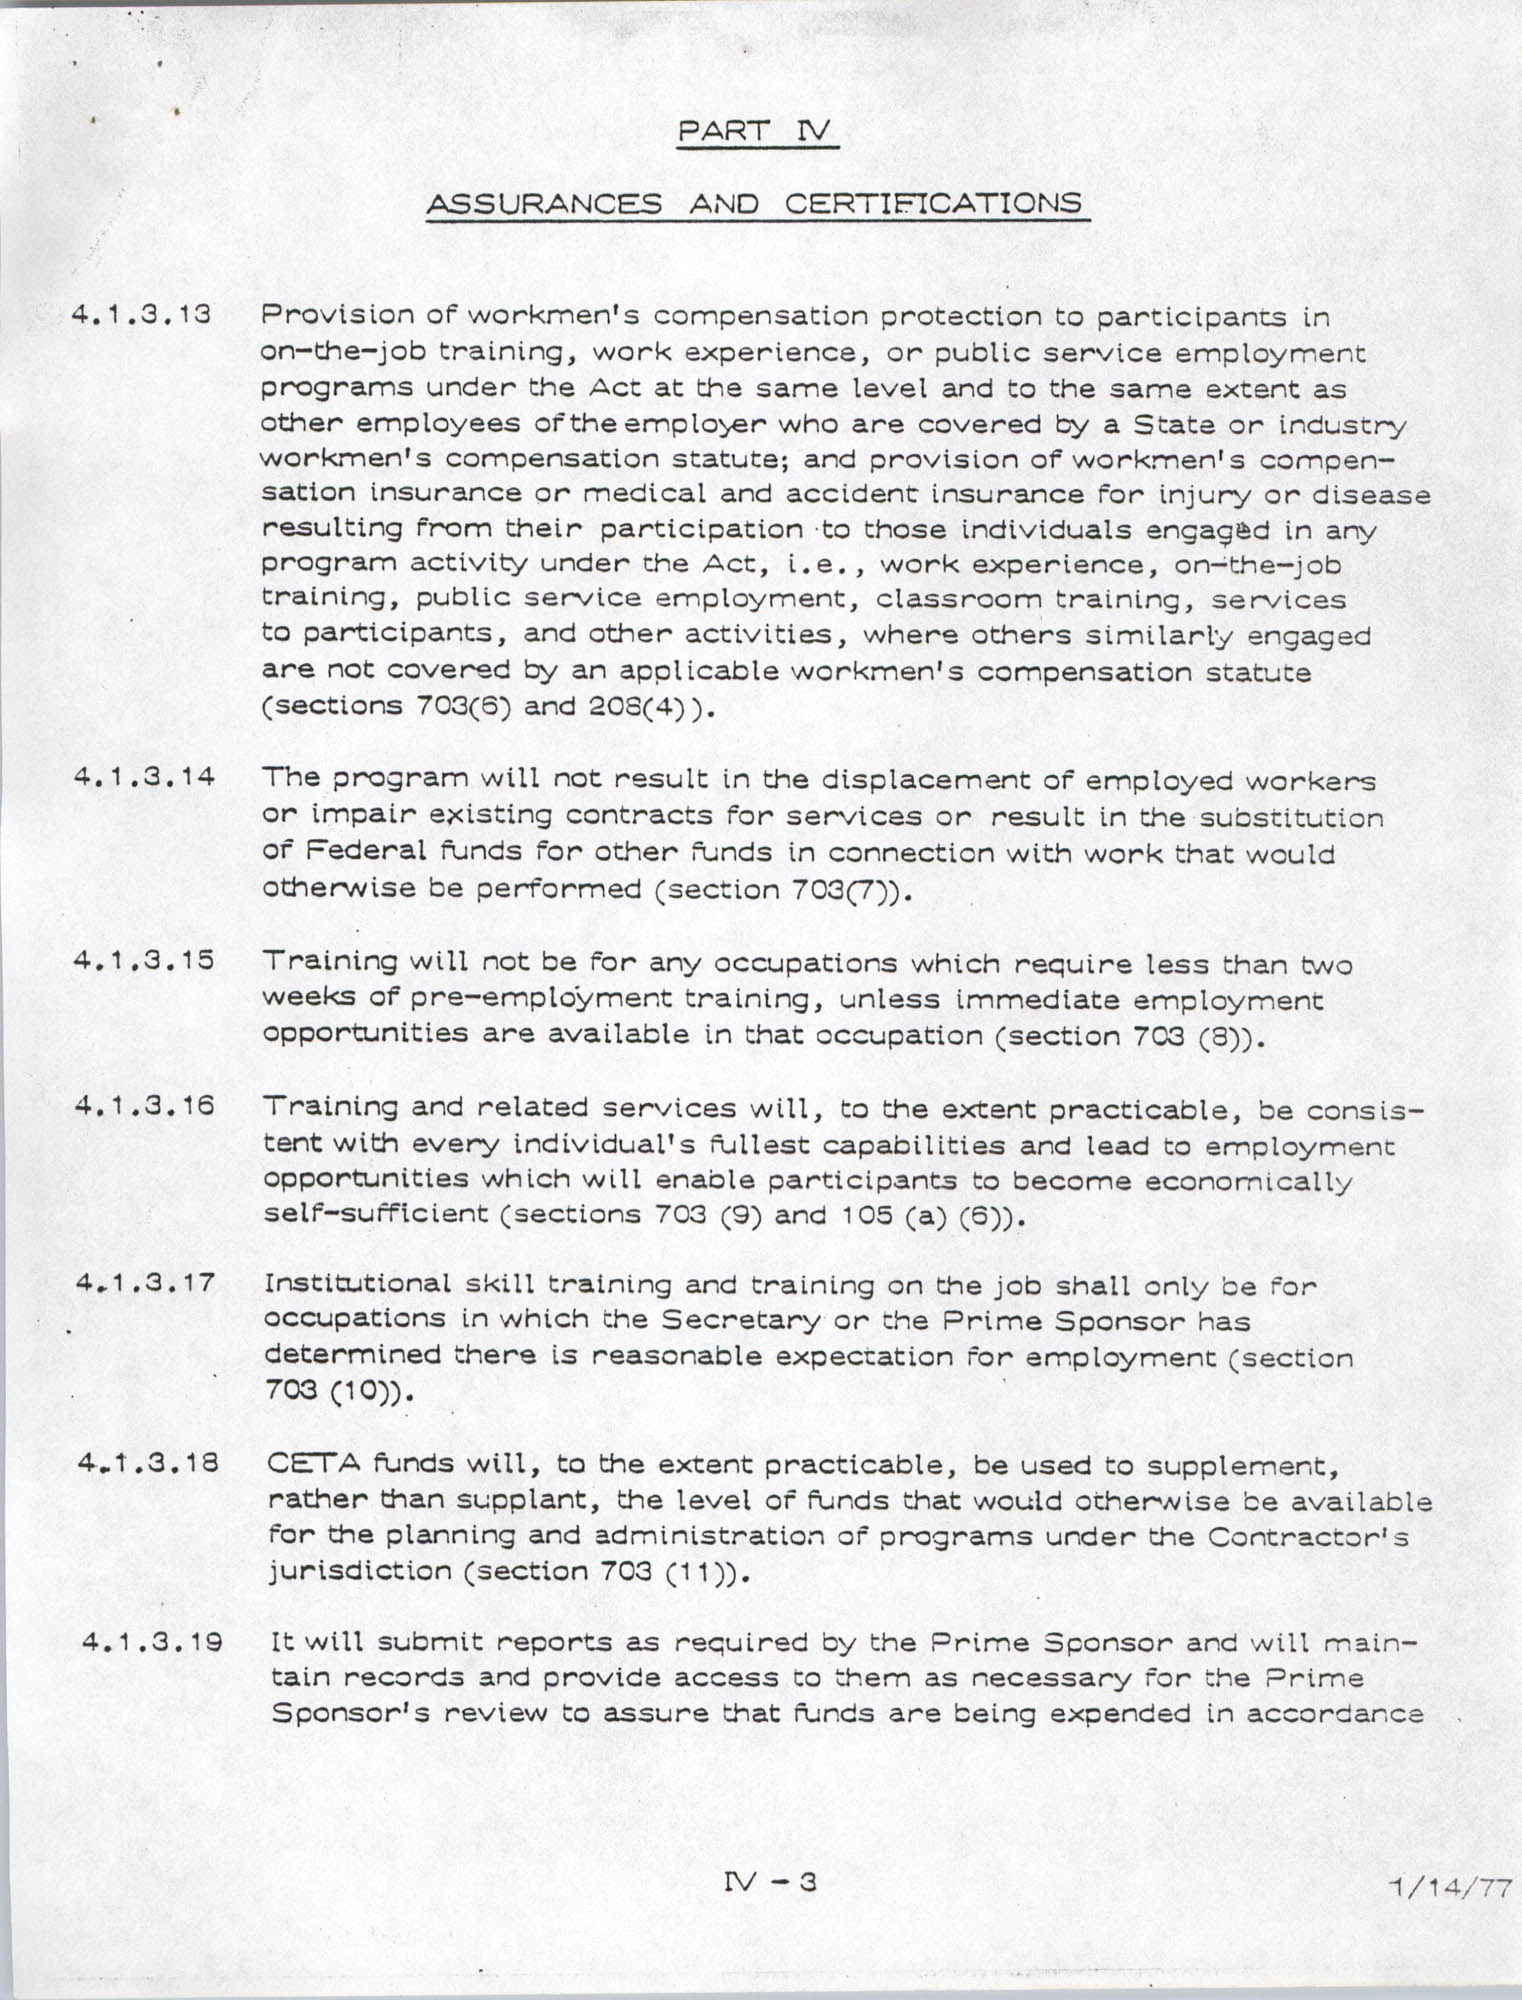 Assurances and Certifications, Page 3